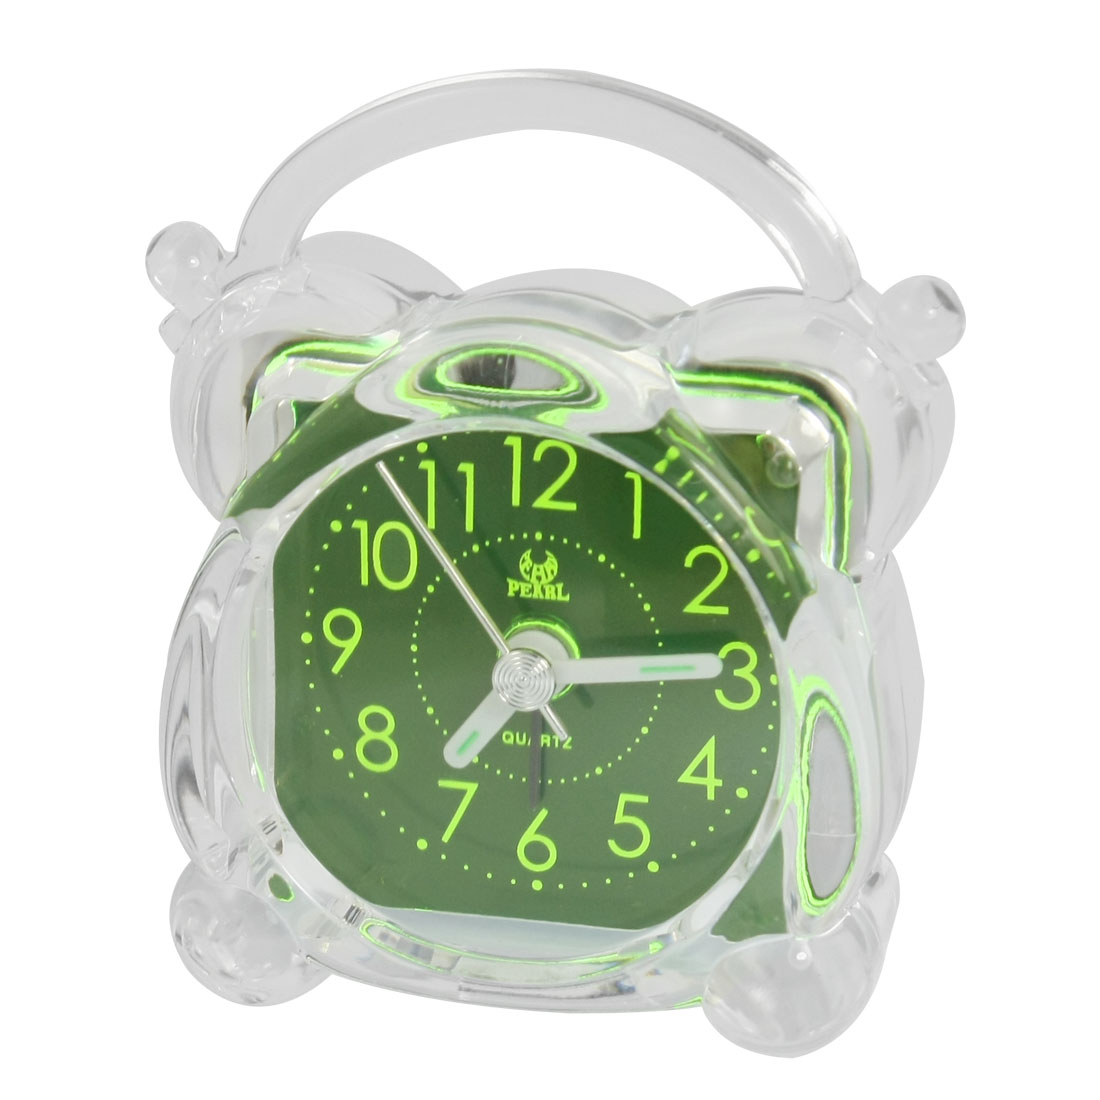 Arabic Numerals Dial Home Bedside Alarm Clock Green Clear